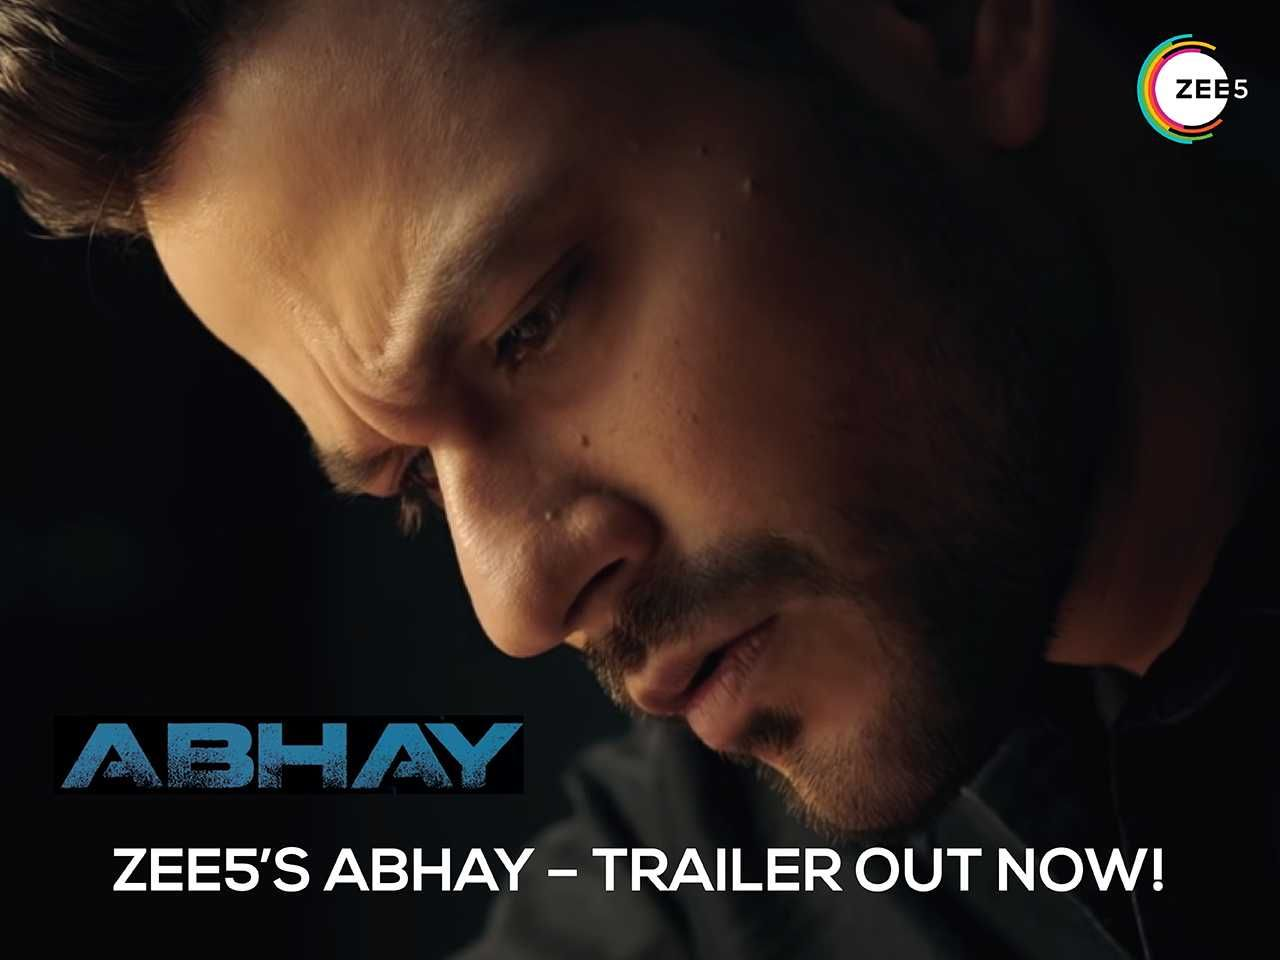 News | ZEE5 has released the trailer for their upcoming